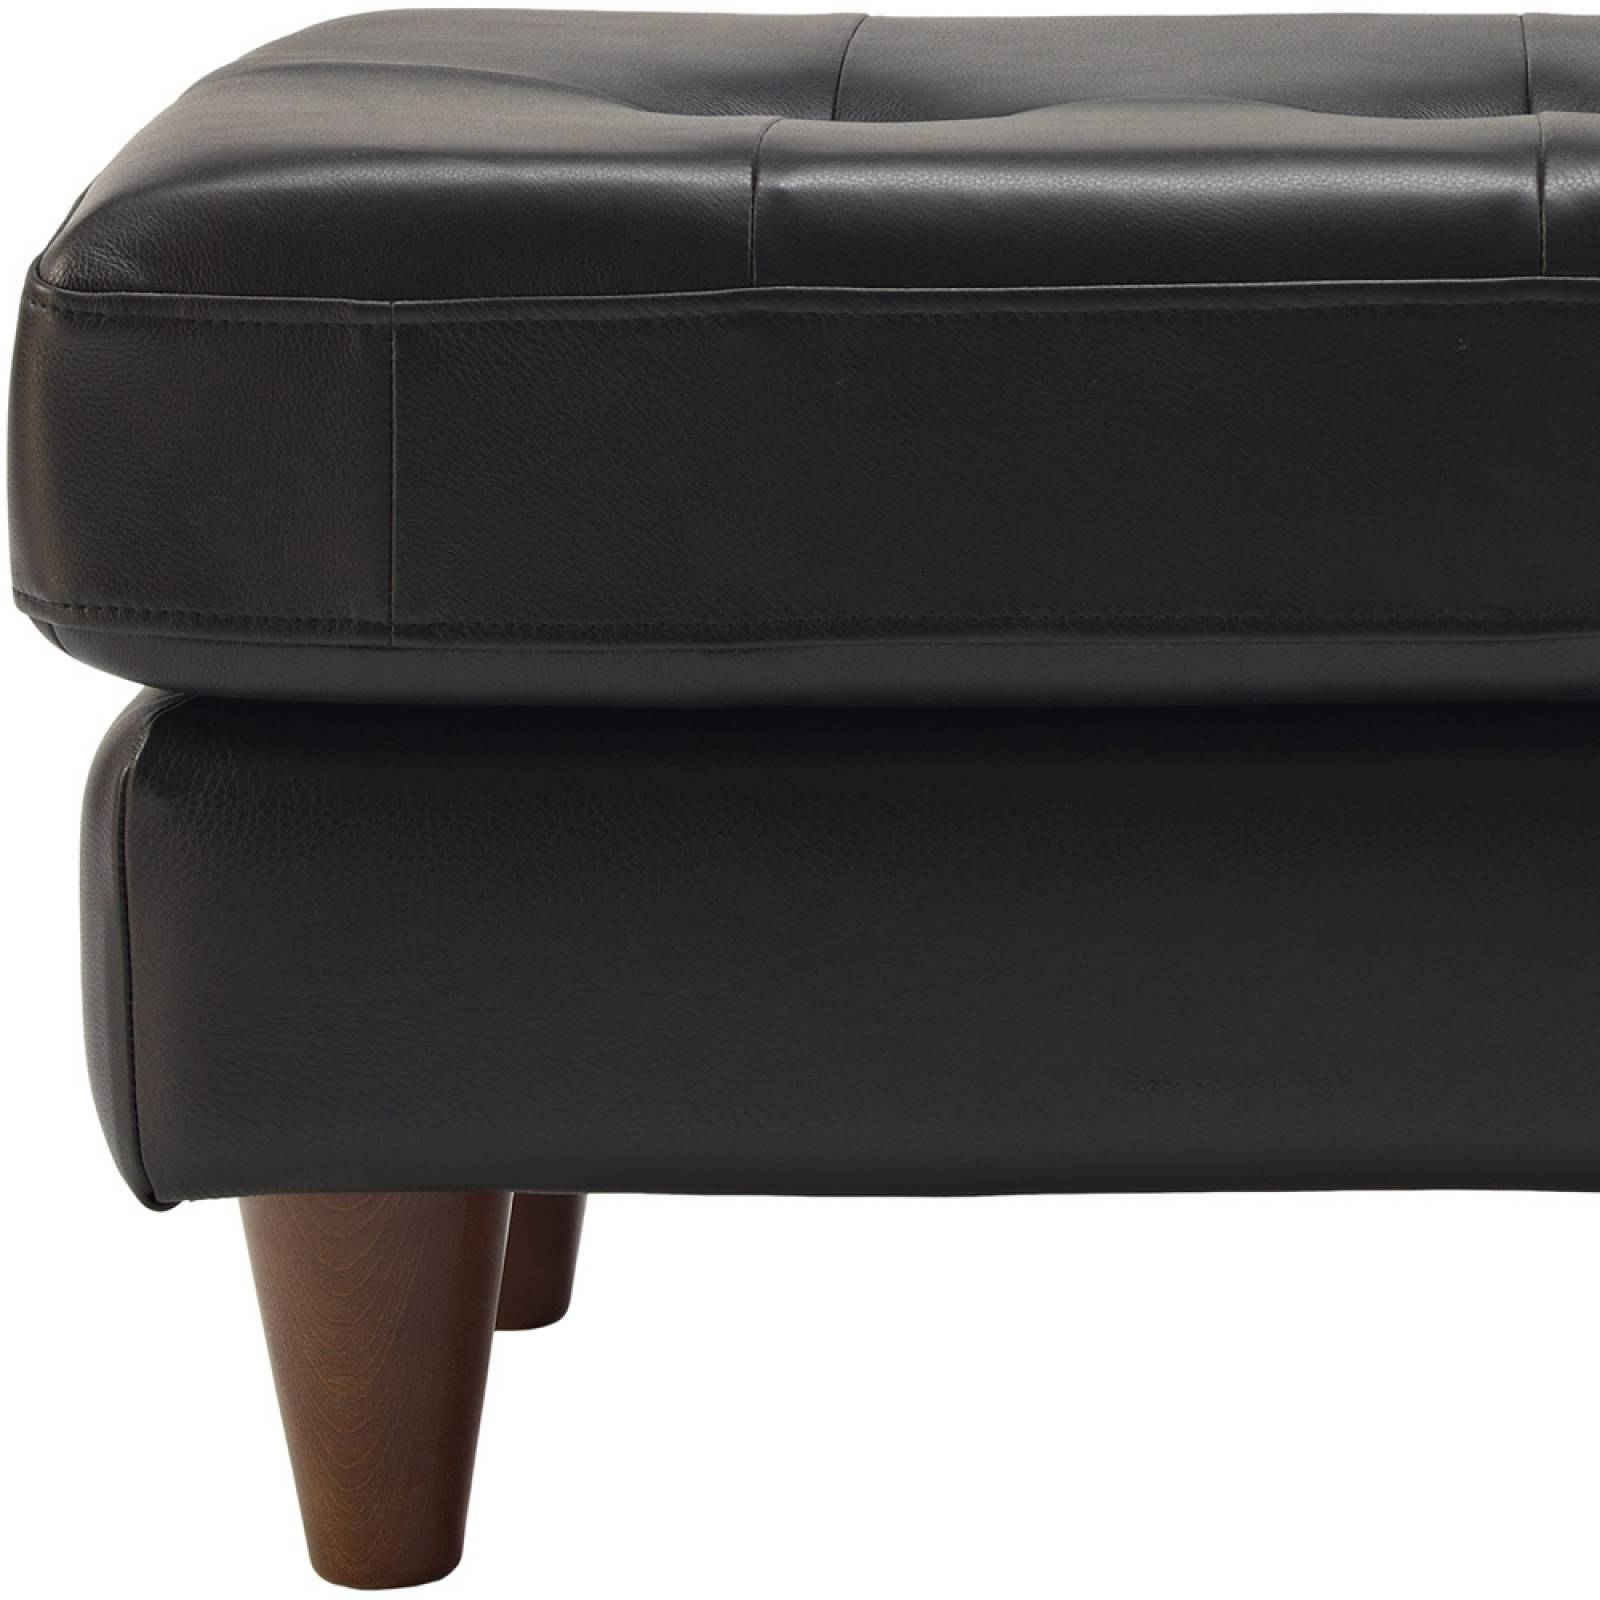 G Plan Vintage The Fifty Nine Leather Footstool thumbnails